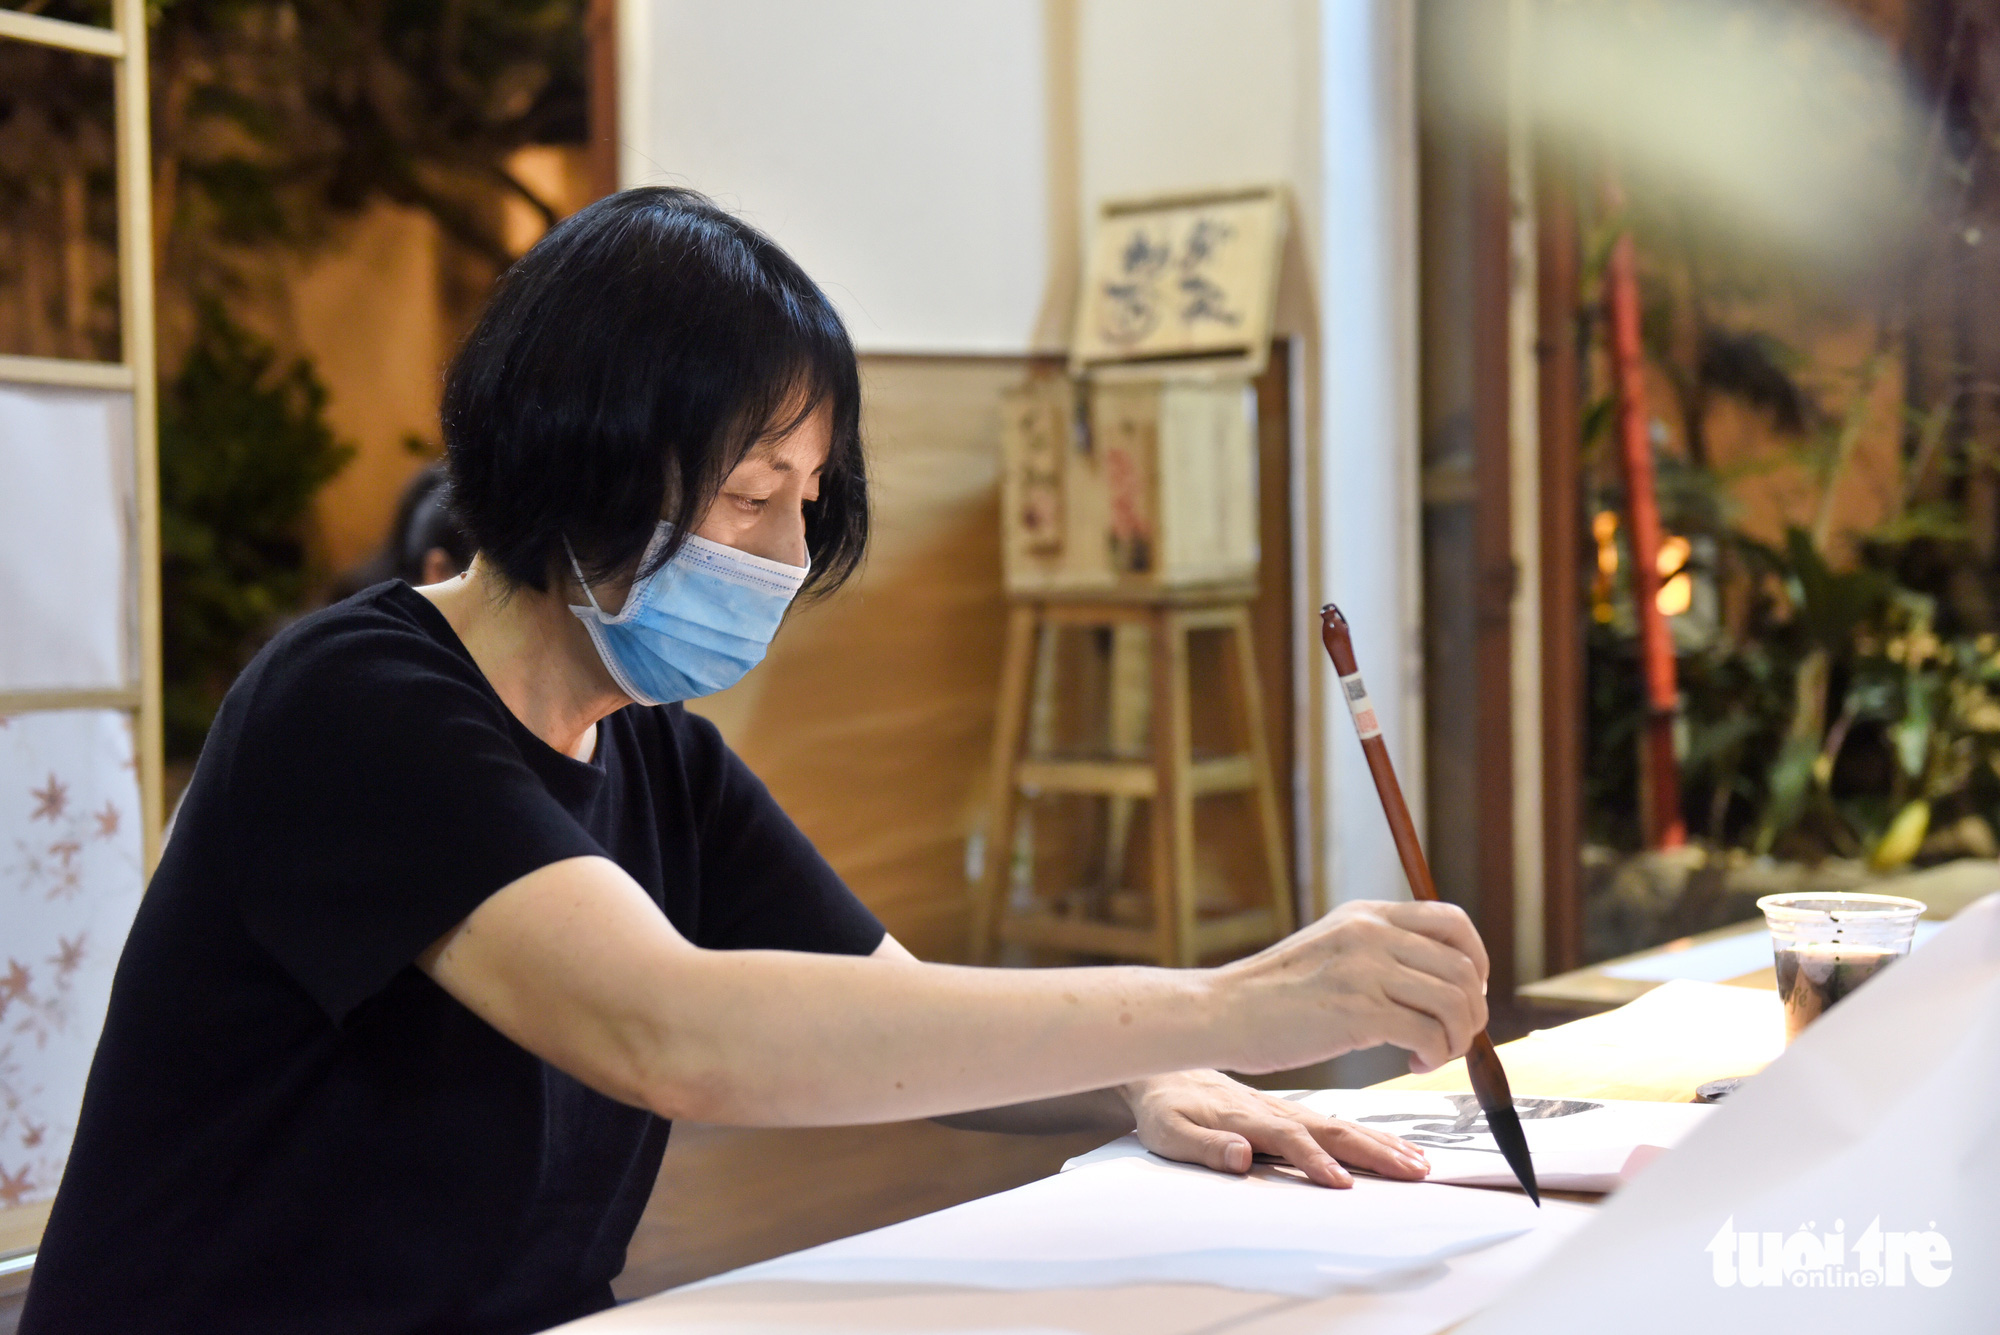 Koizumi, a Japanese customer, writes calligraphy at the Zentea teahouse in Ho Chi Minh City, Vietnam. She has taken the calligraphy class offered at the place for half of year. Photo: Tuoi Tre